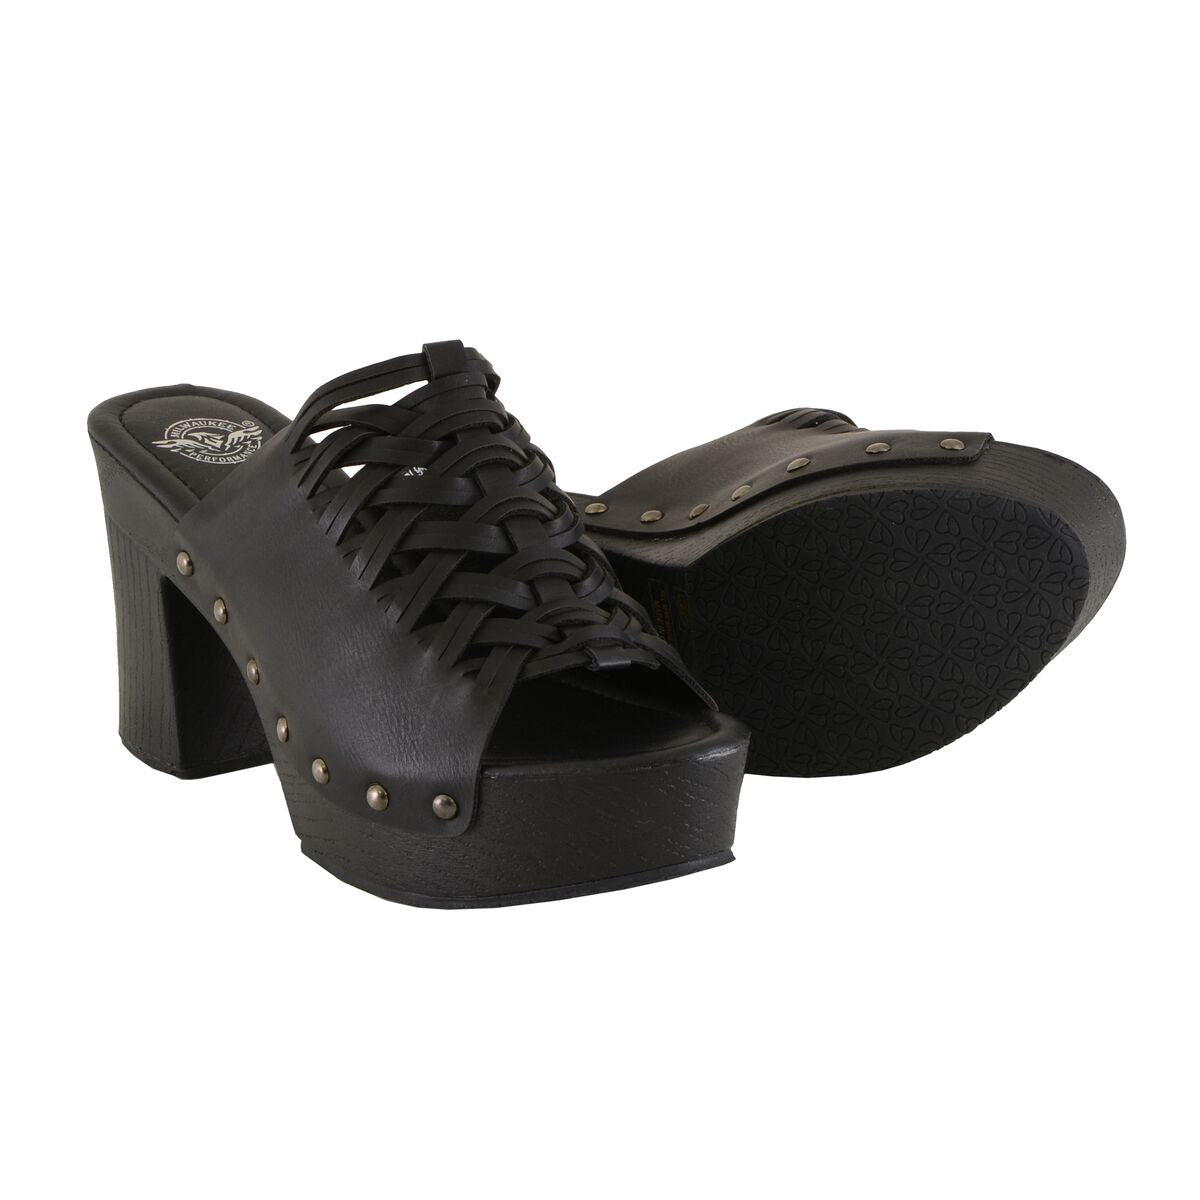 Milwaukee Performance MBL9410 Womens Black Open Toe Platform Wedges